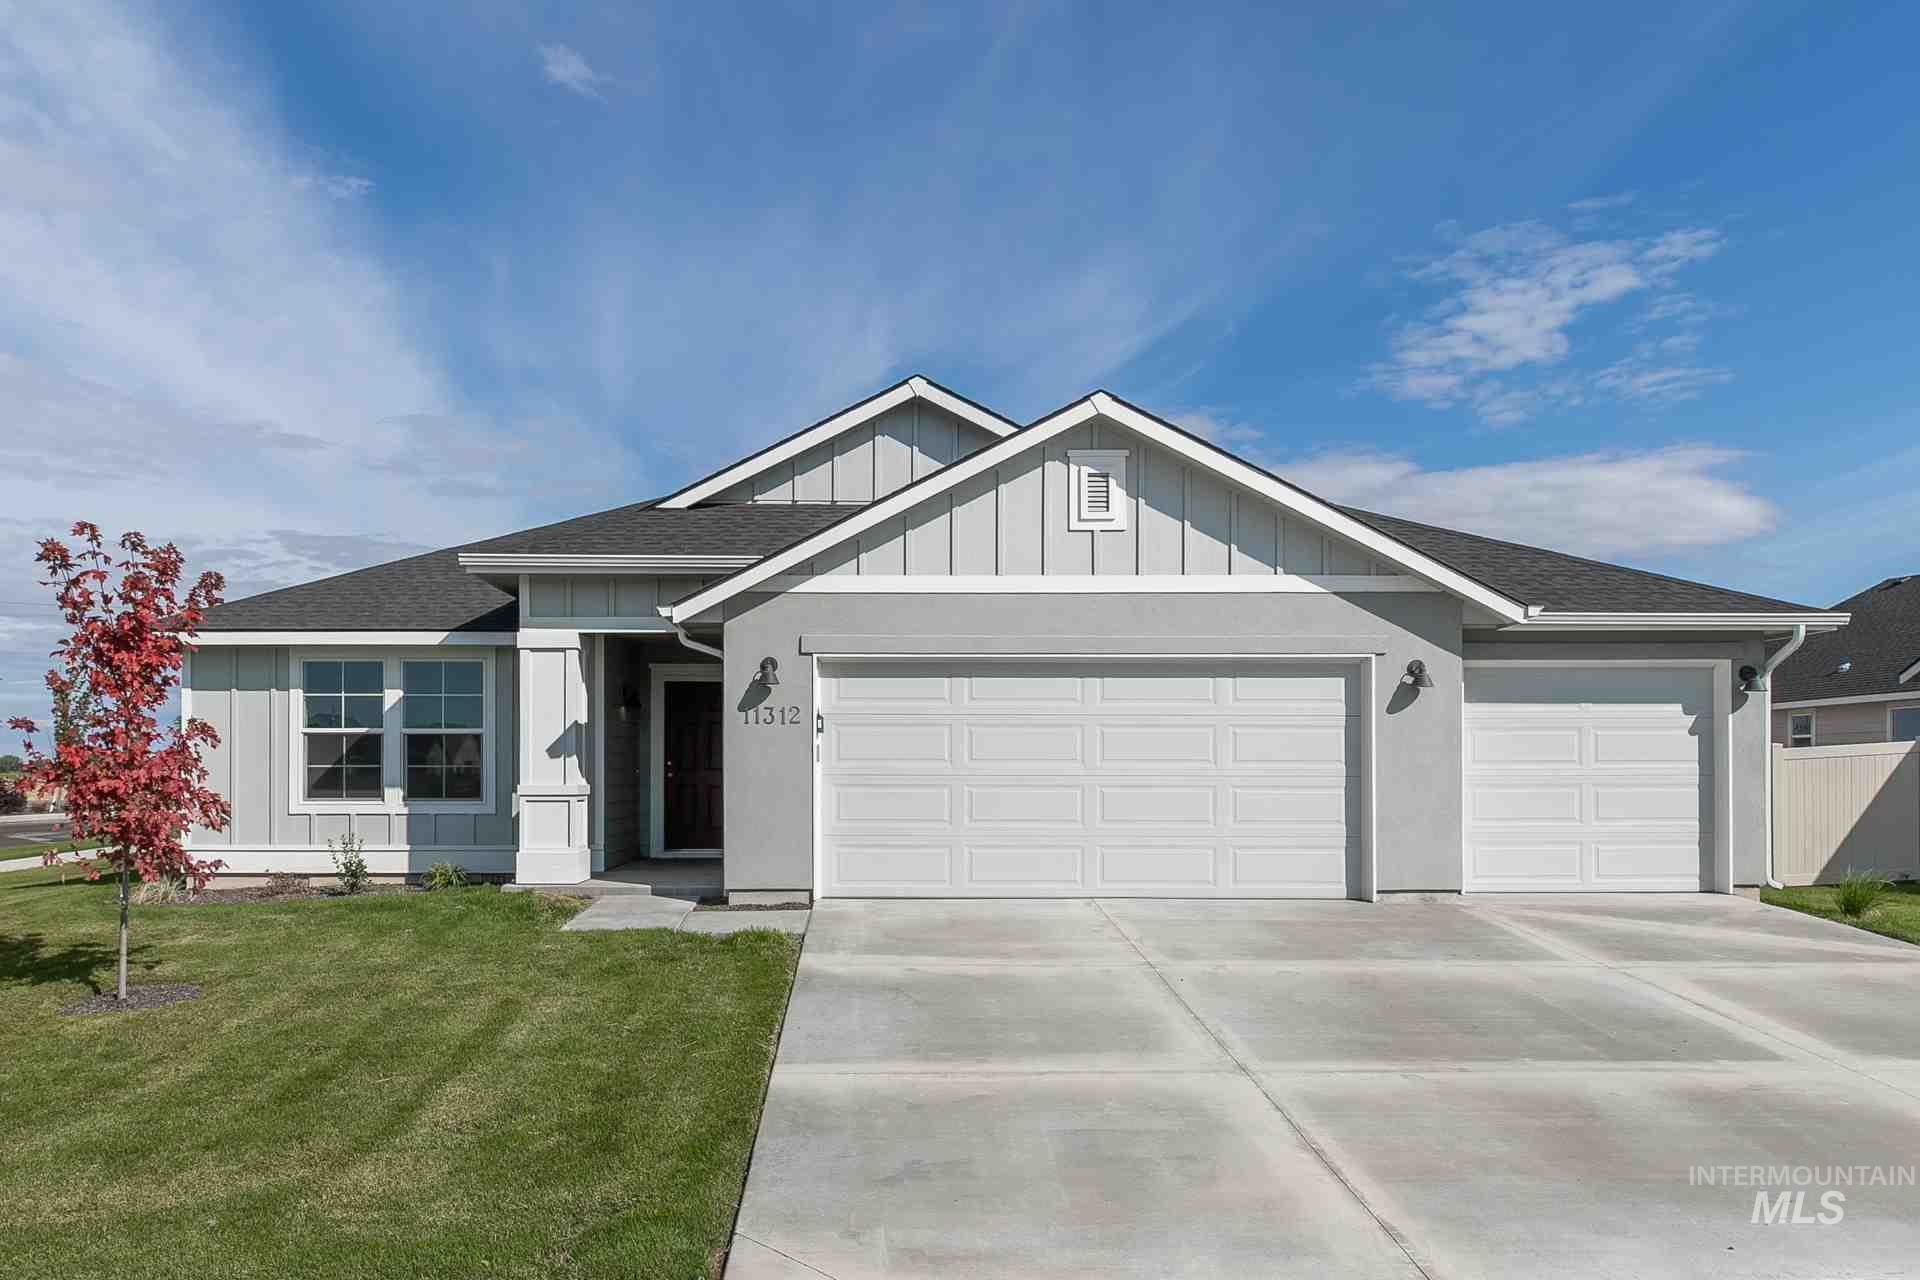 17606 N Newdale Ave., Nampa, ID 83687 - MLS#: 98766587